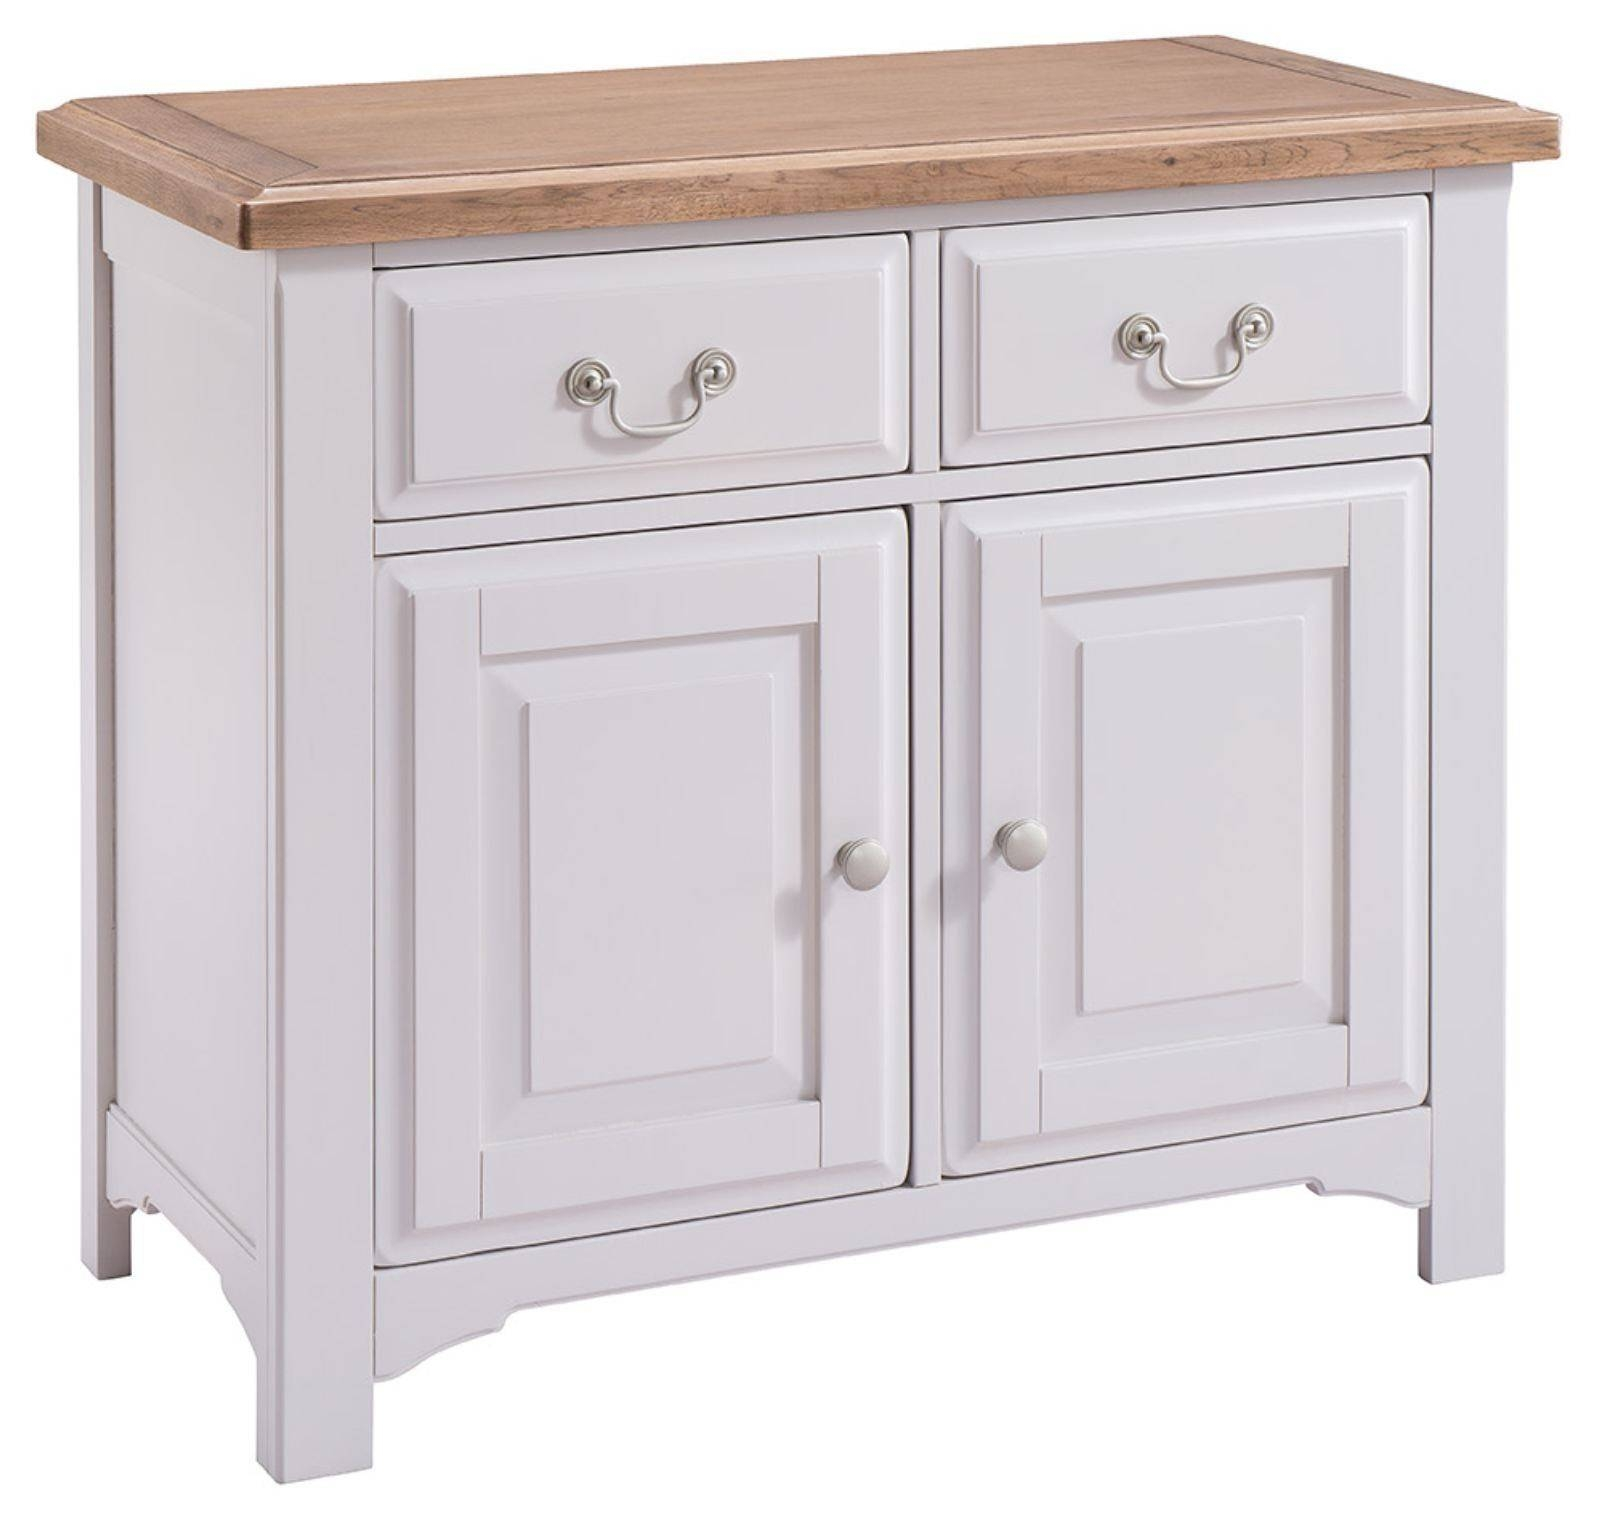 Hutch® – Buxton Light Grey Painted Small Sideboard In Small Sideboard With Drawers (View 15 of 20)